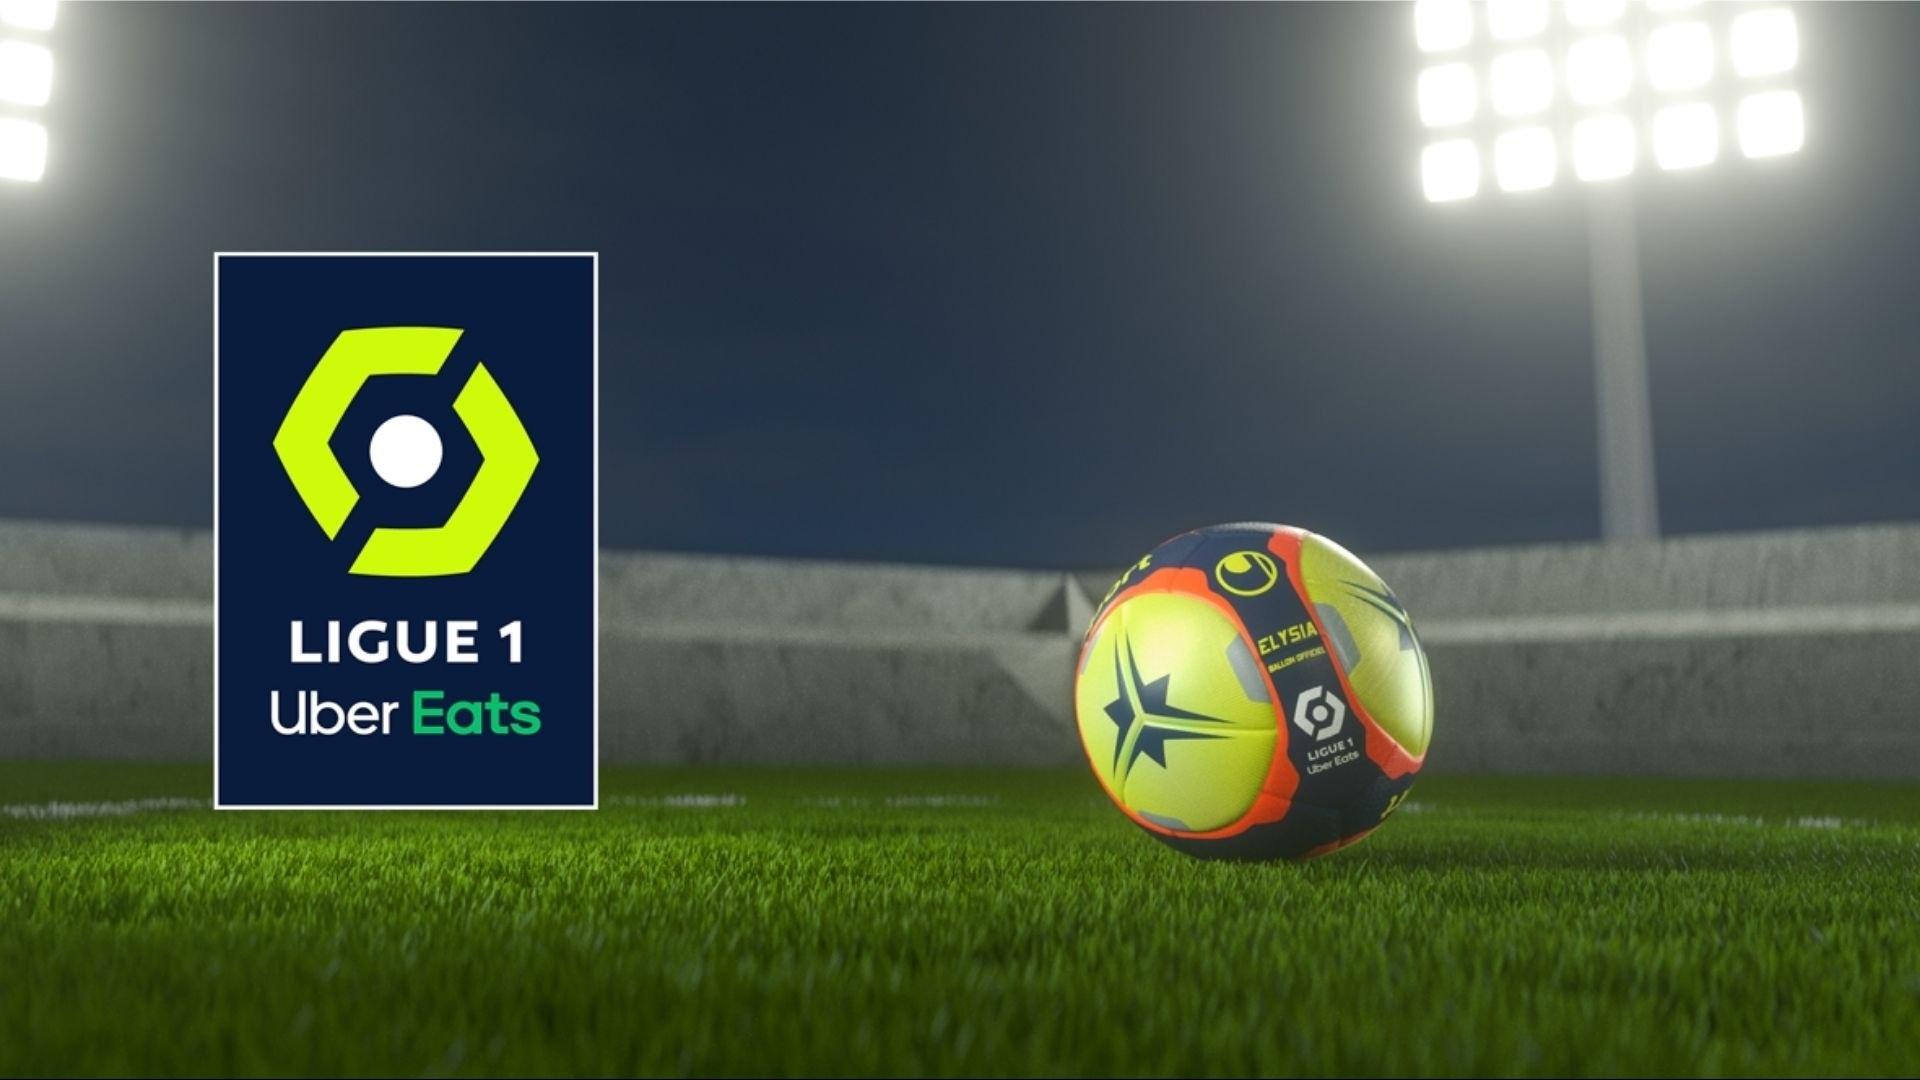 Watch Live Ligue 1 in Singapore for FREE: Online, TV Channels, Stream